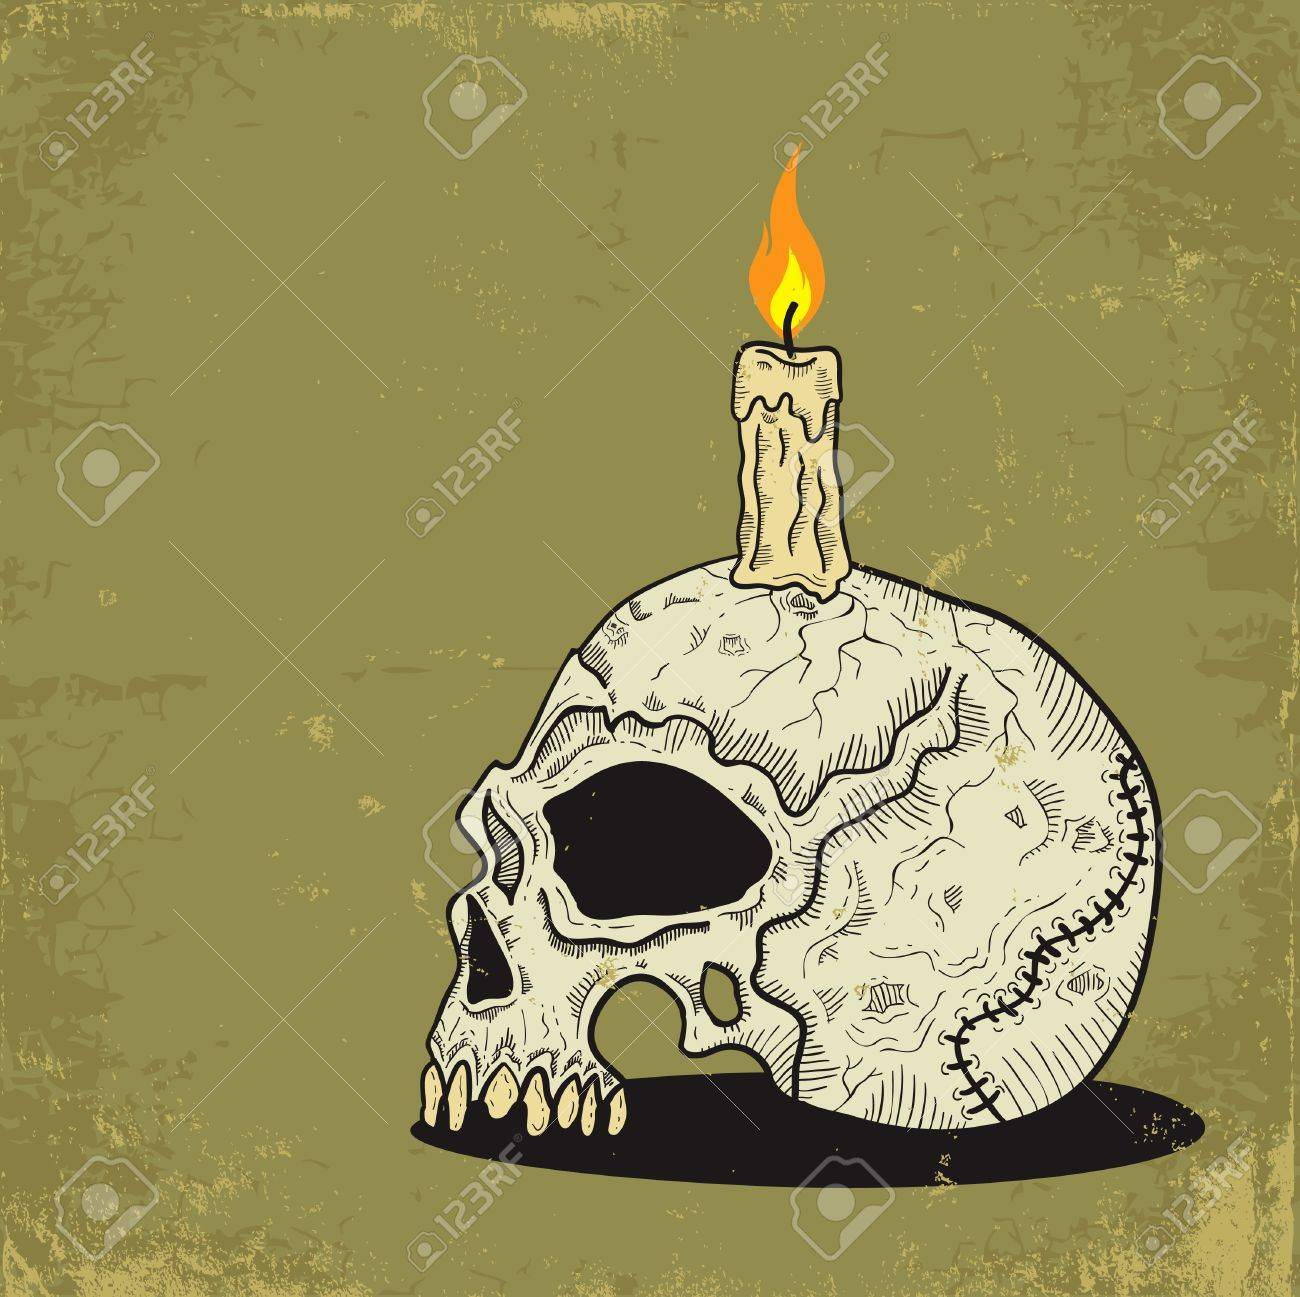 Illustration of a skull with a candle Stock Vector - 10436052